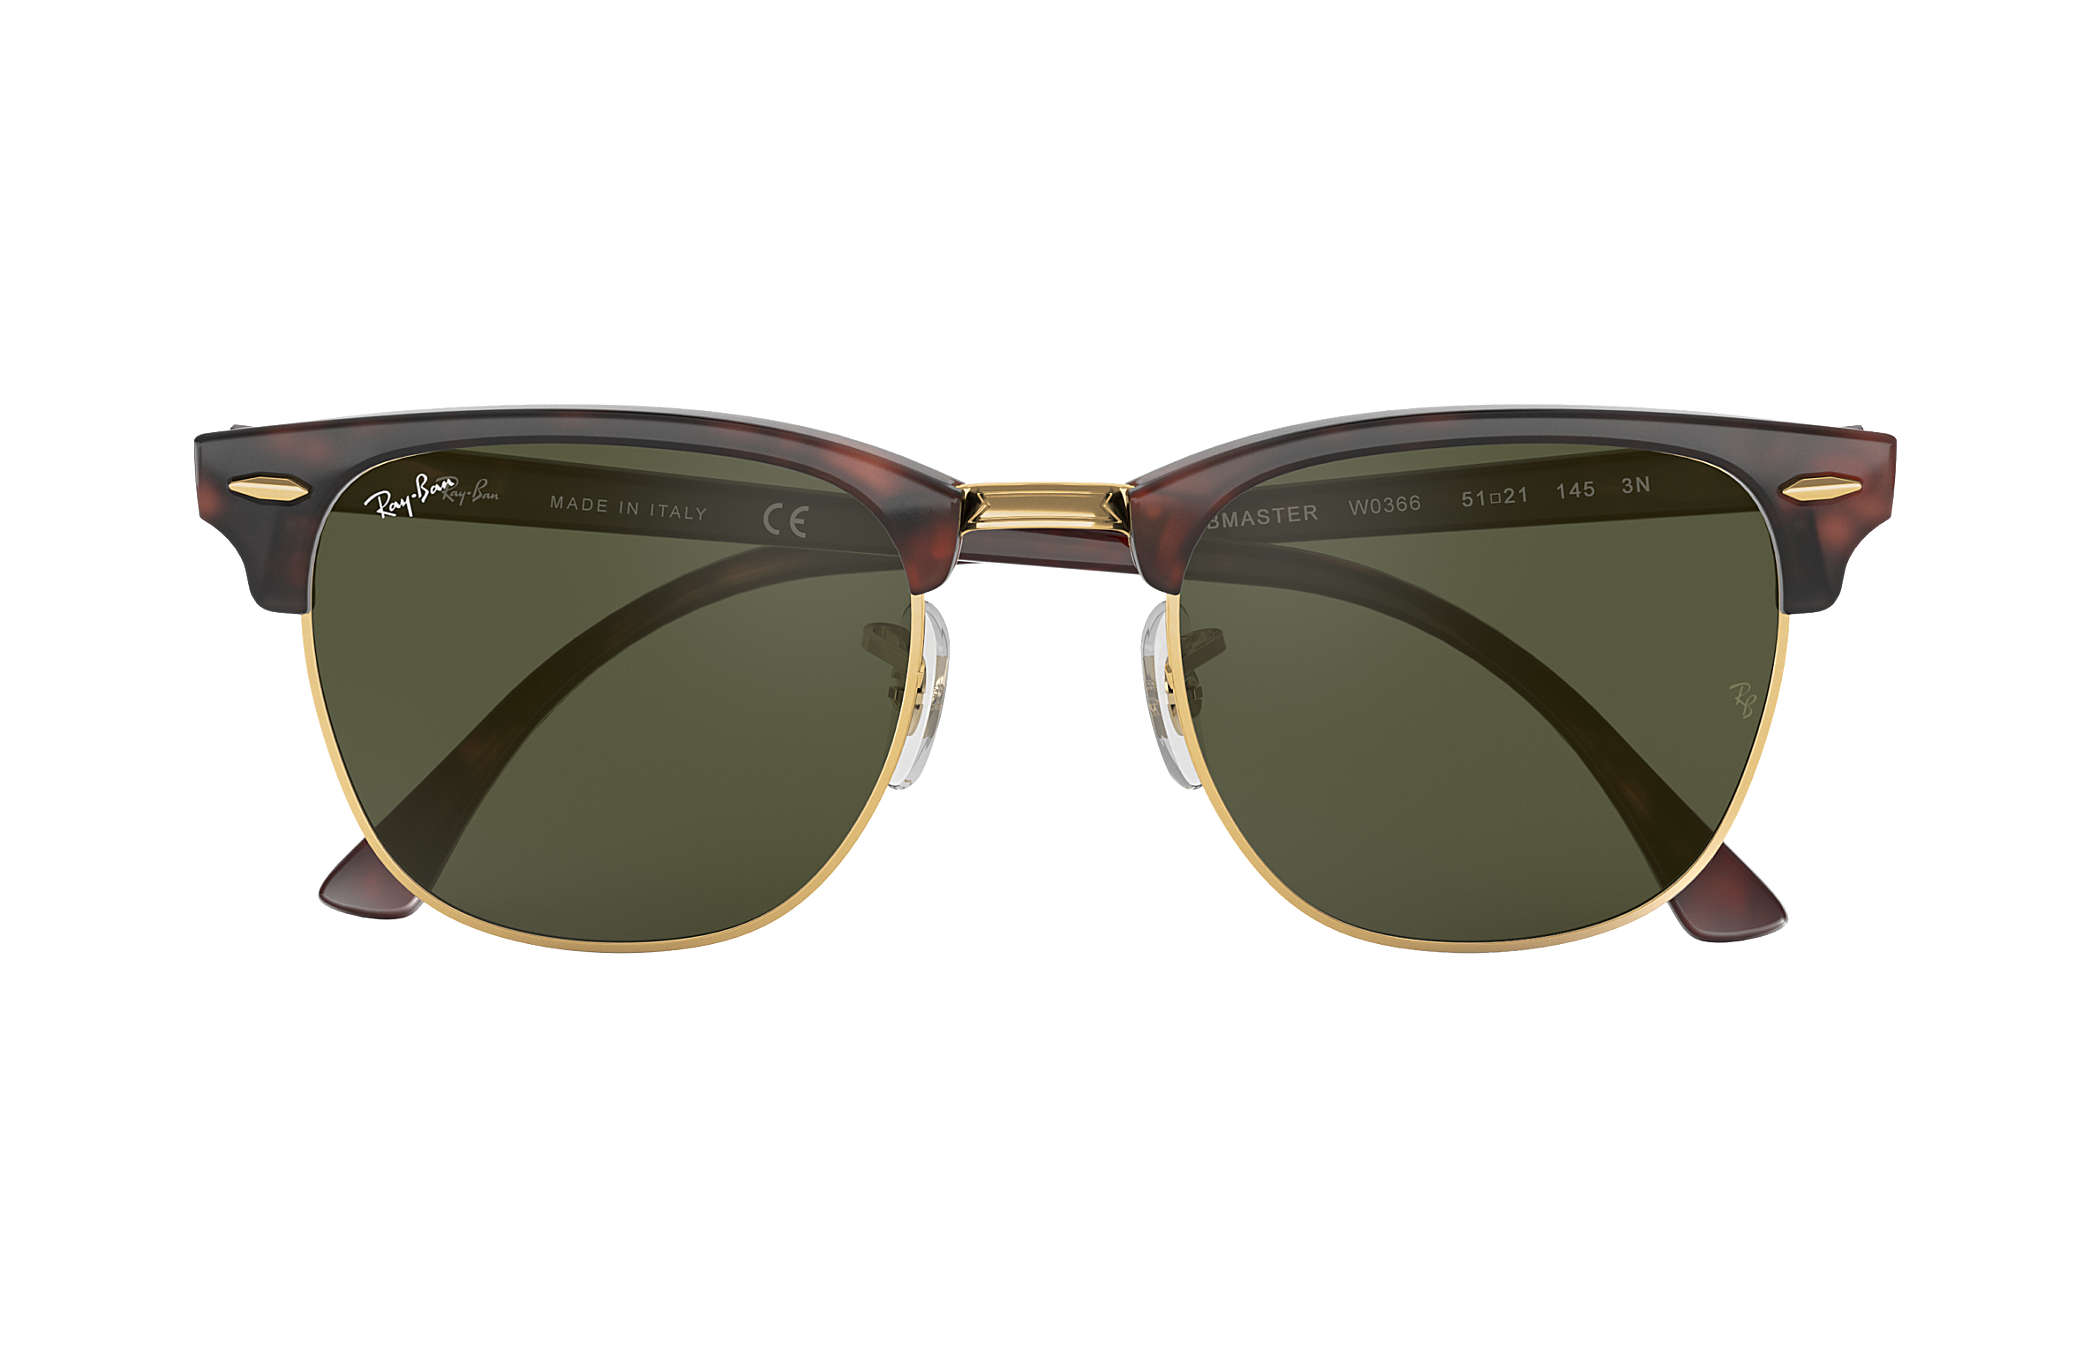 ray ban rb3016 price  CLUBMASTER CLASSIC Sunglasses Tortoise Acetate, Green Classic G-15 ...